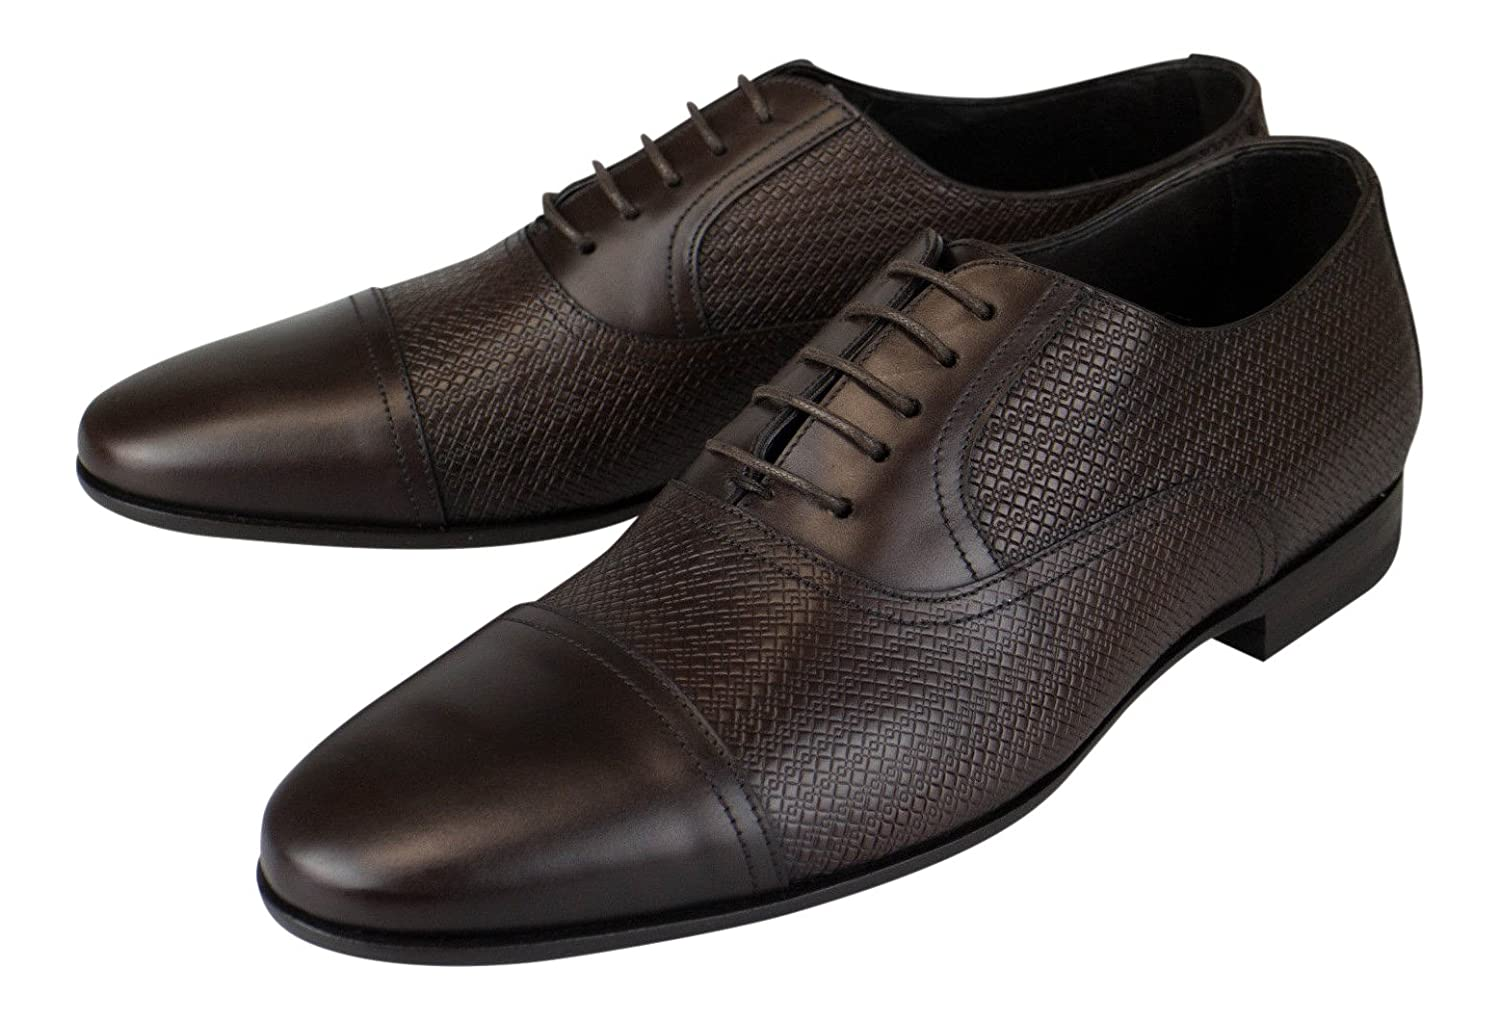 Canali 1934 Brown Leather with Woven Texture Oxford Dress shoes Size 8.5 41.5